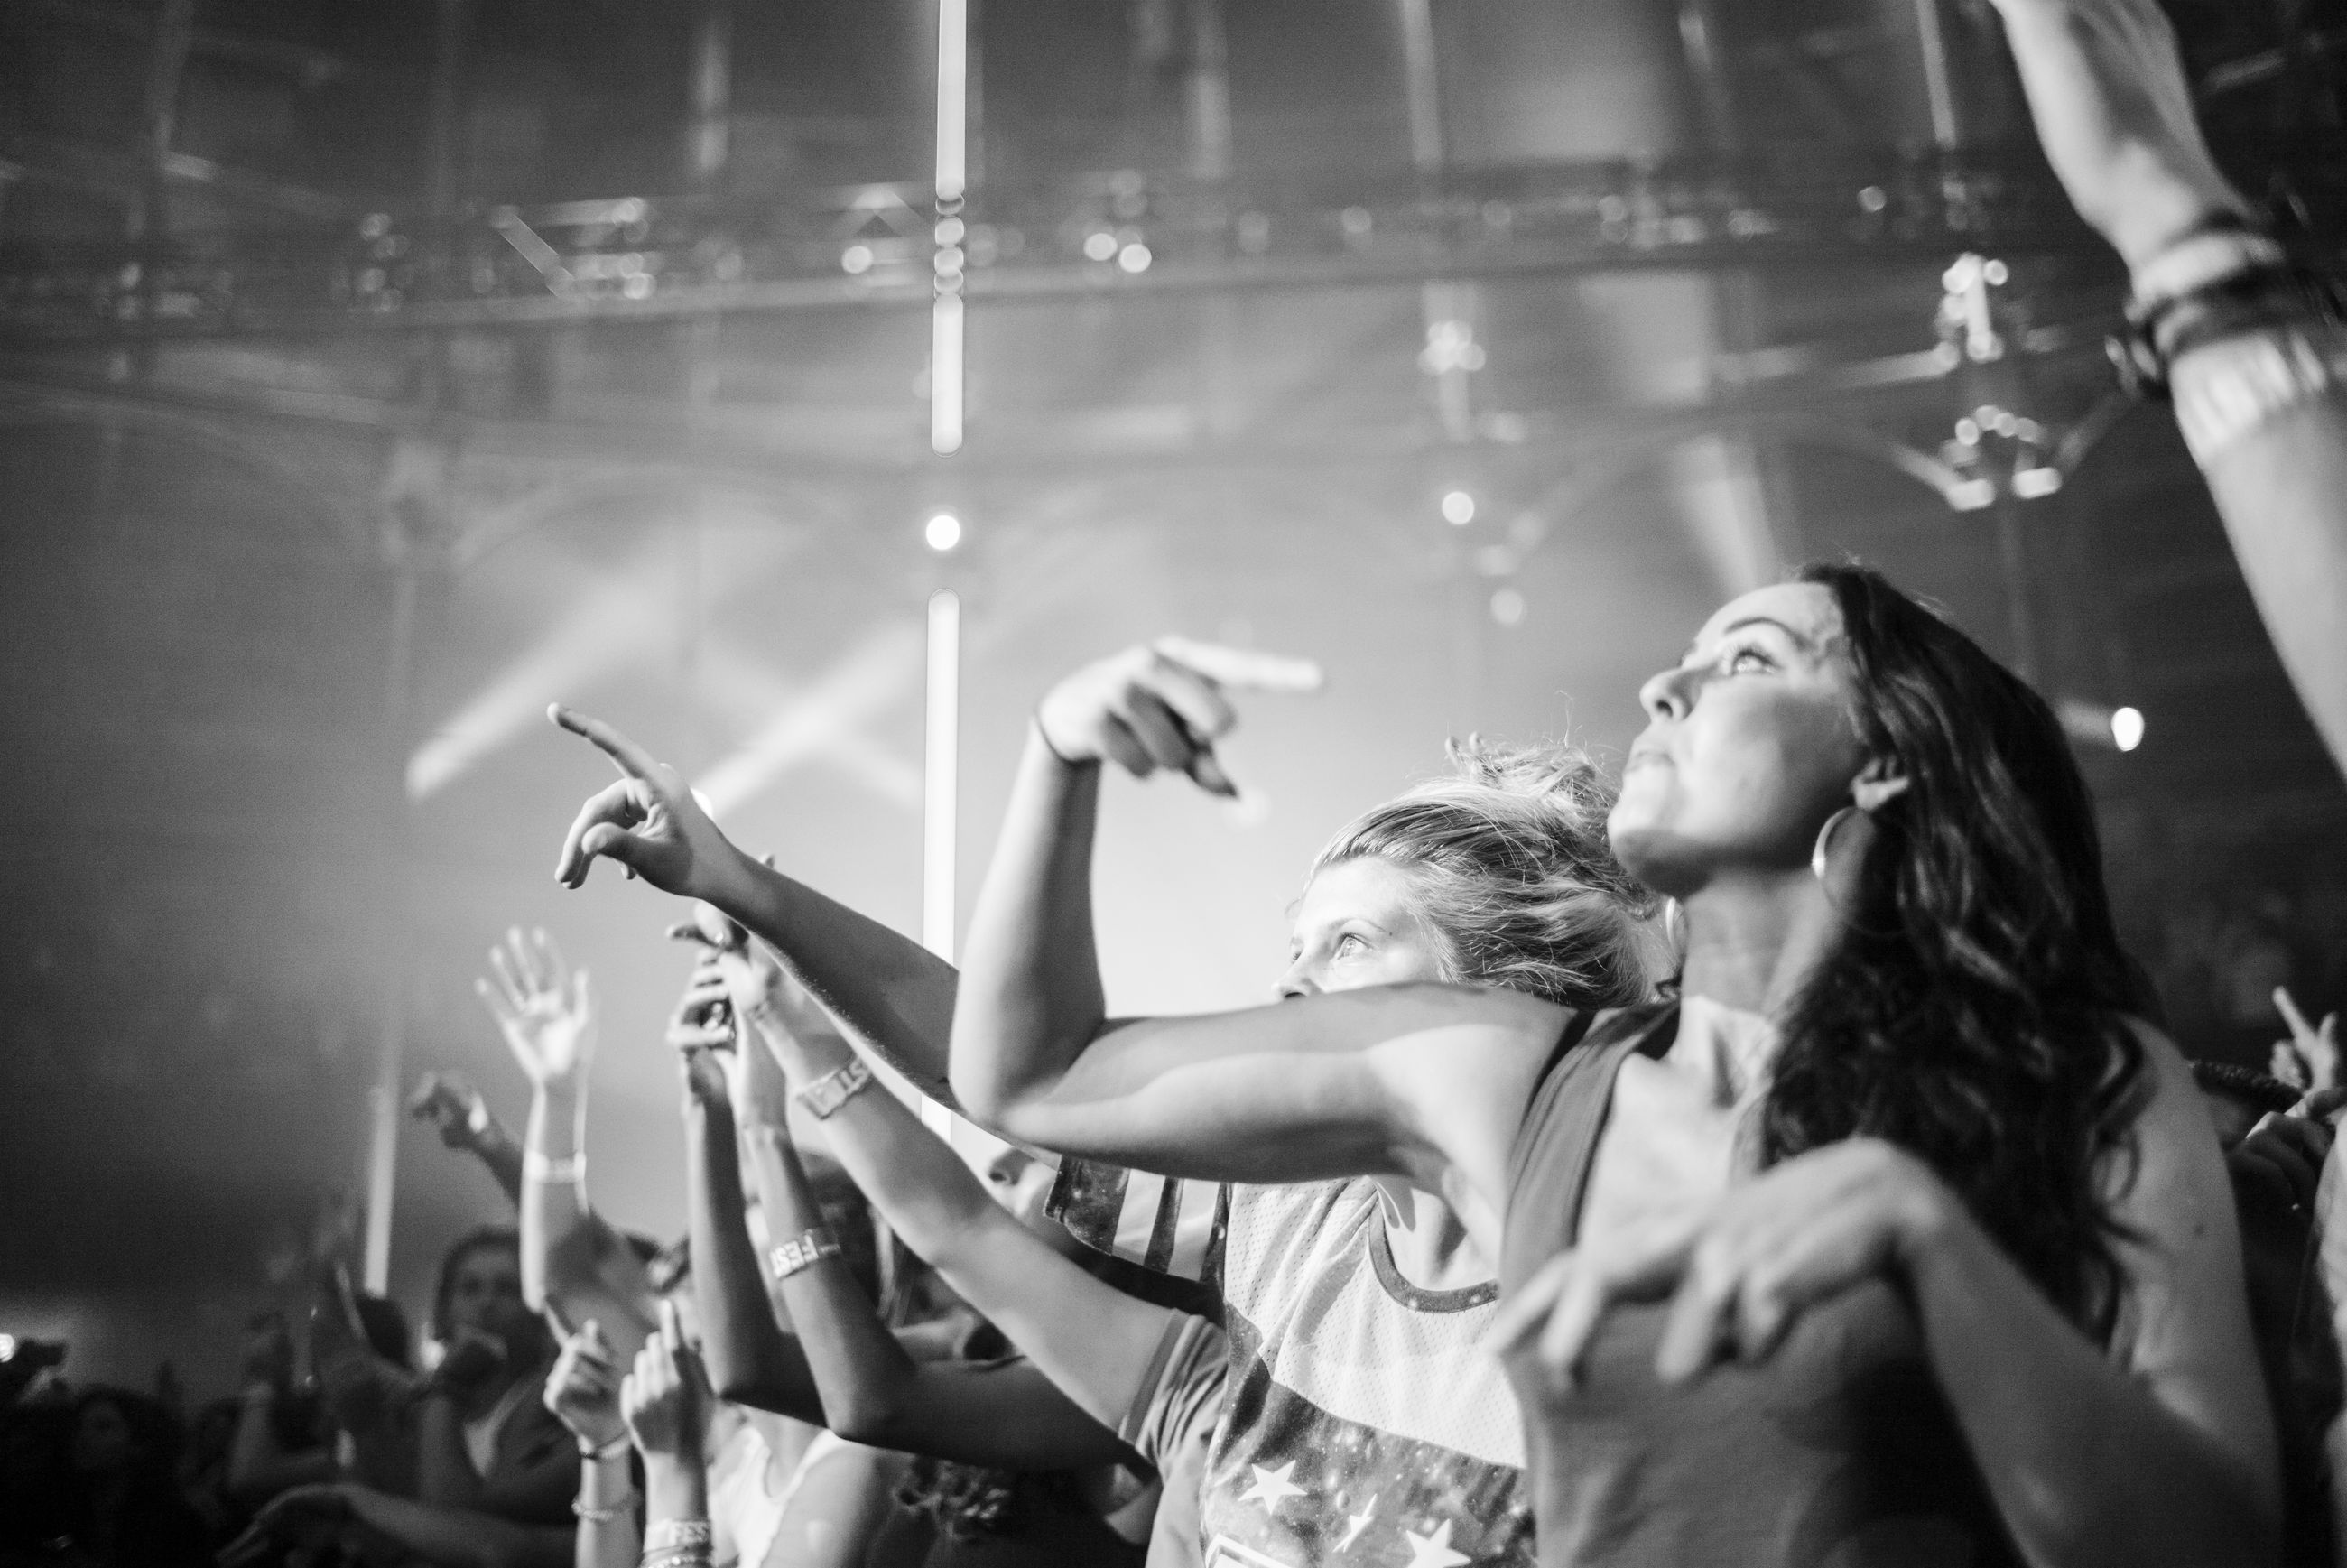 lifestyles, indoors, leisure activity, young adult, togetherness, enjoyment, fun, young women, performance, illuminated, holding, person, casual clothing, arts culture and entertainment, standing, music, nightlife, men